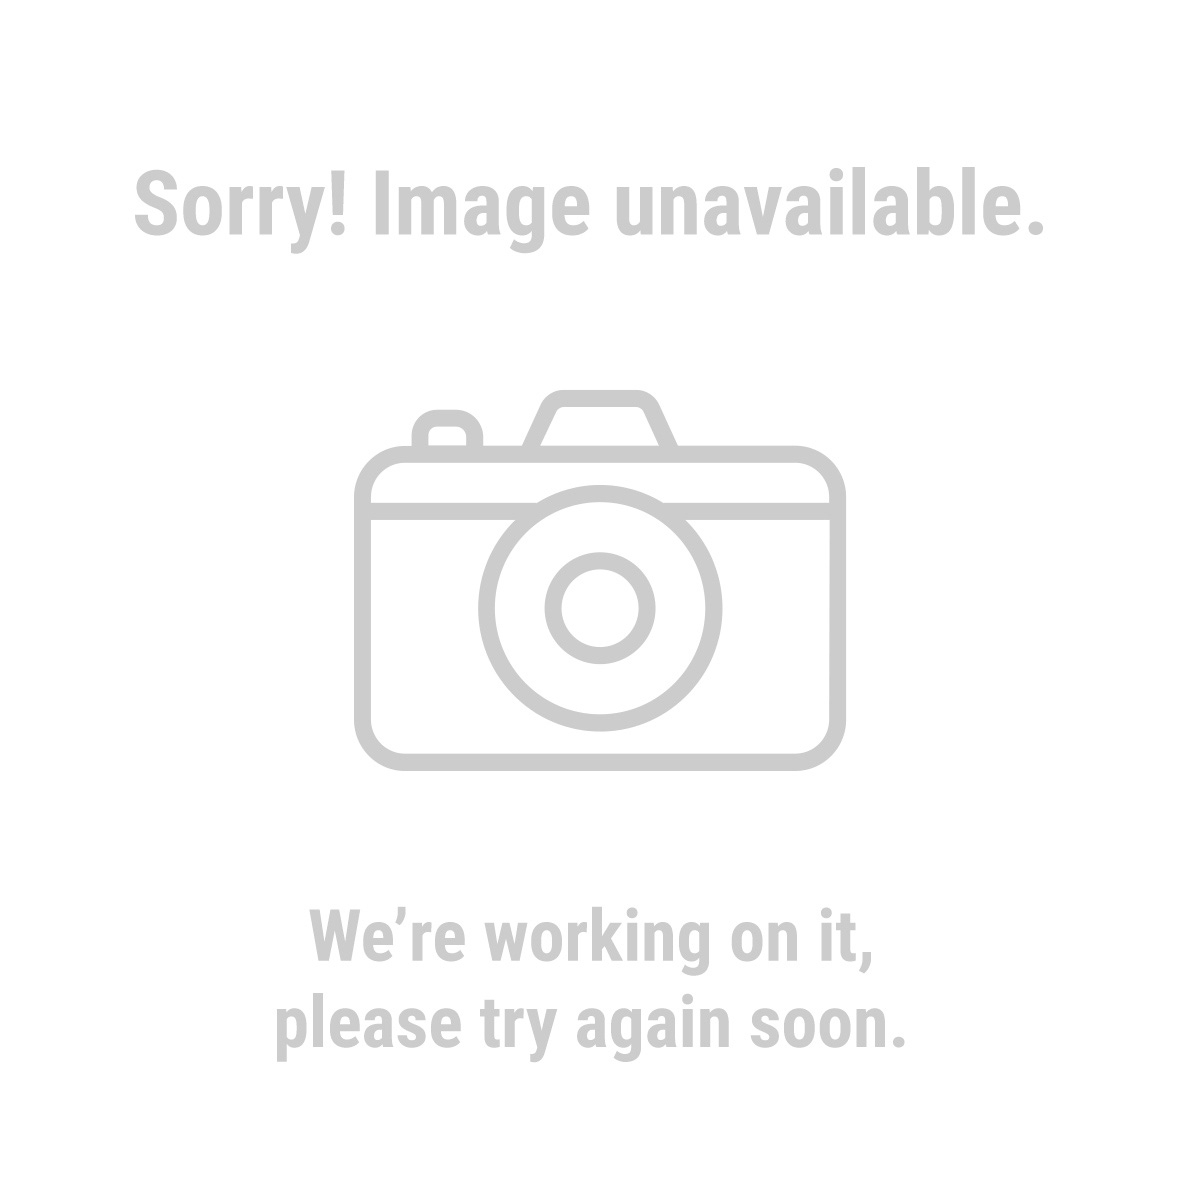 http://www.harborfreight.com/cycle-tree-compact-bike-storage-2628.html